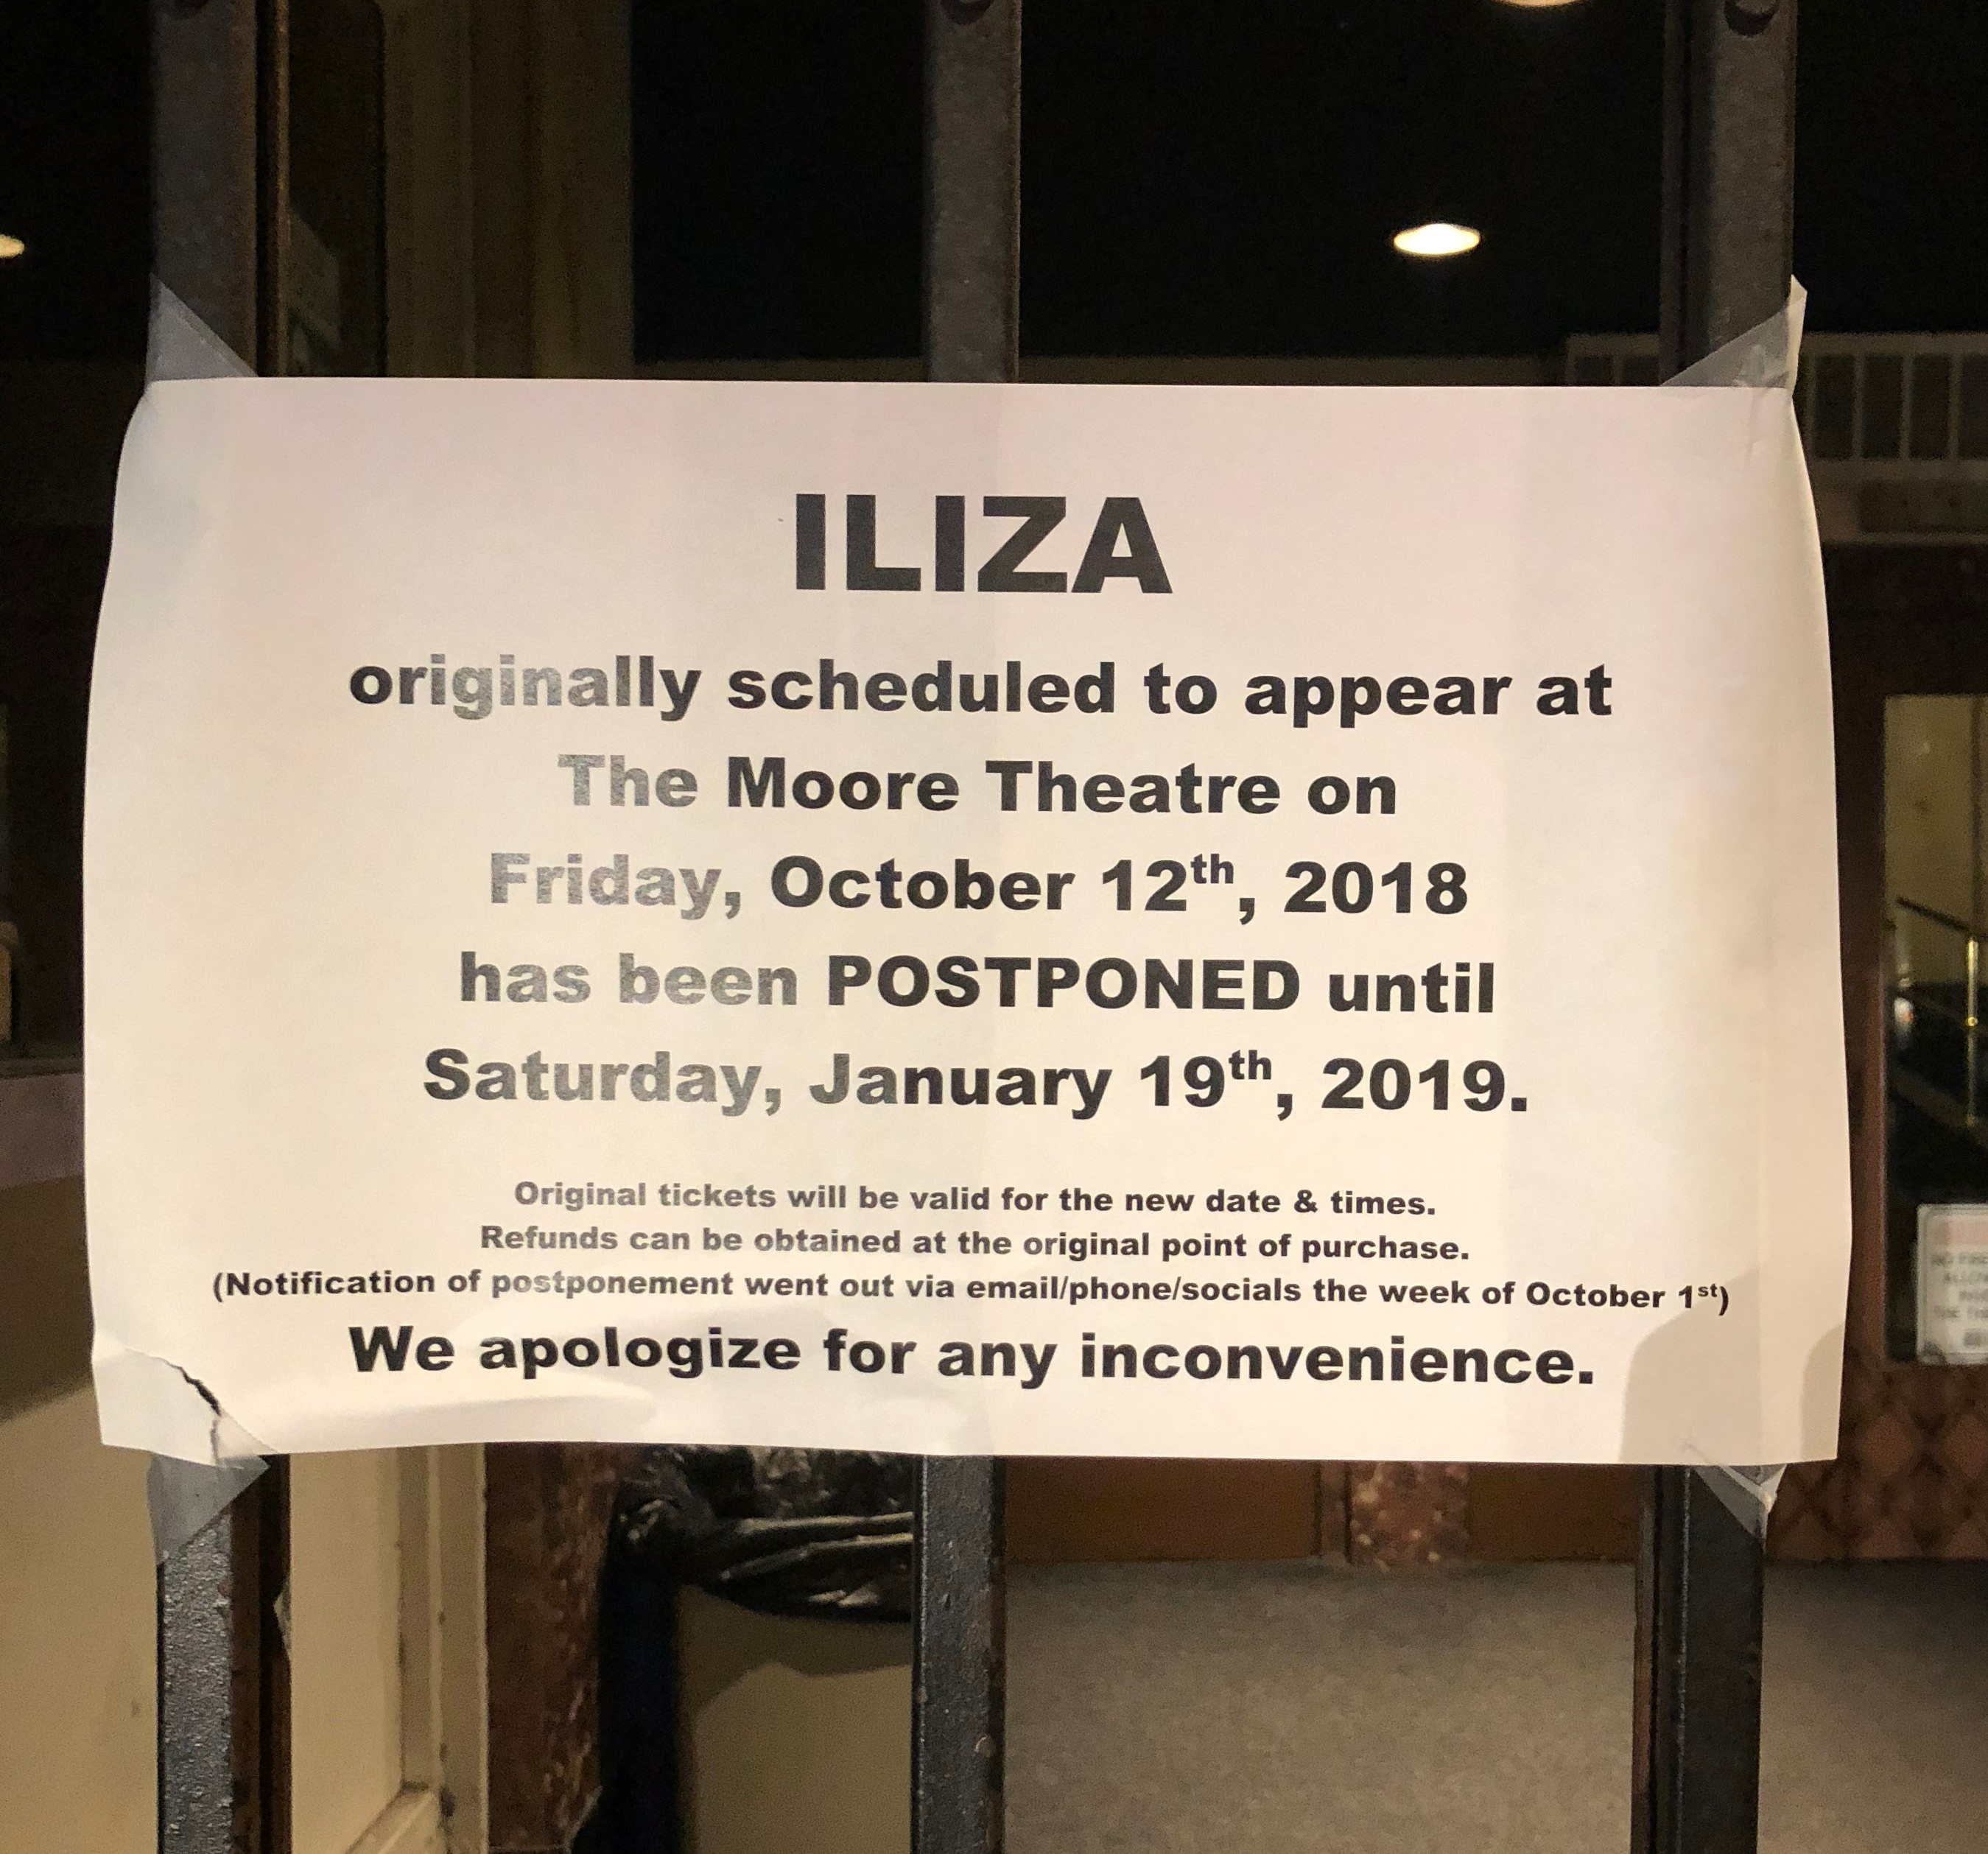 The sign for our canceled show - bummer!